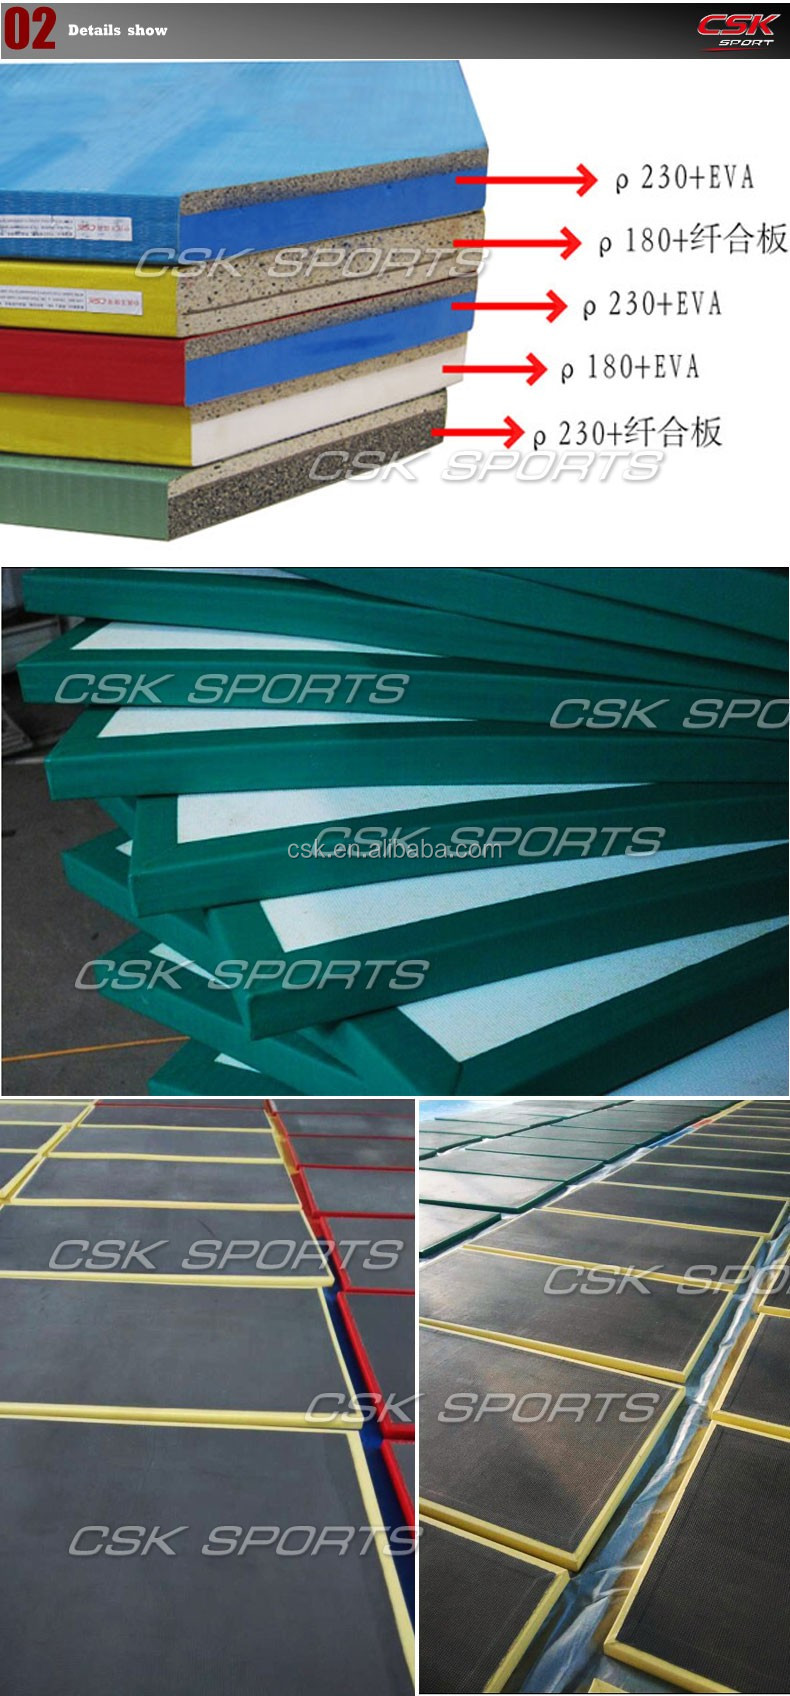 CSK Standard 150/180/230 Density Olympics Judo Floor Mats For Competition